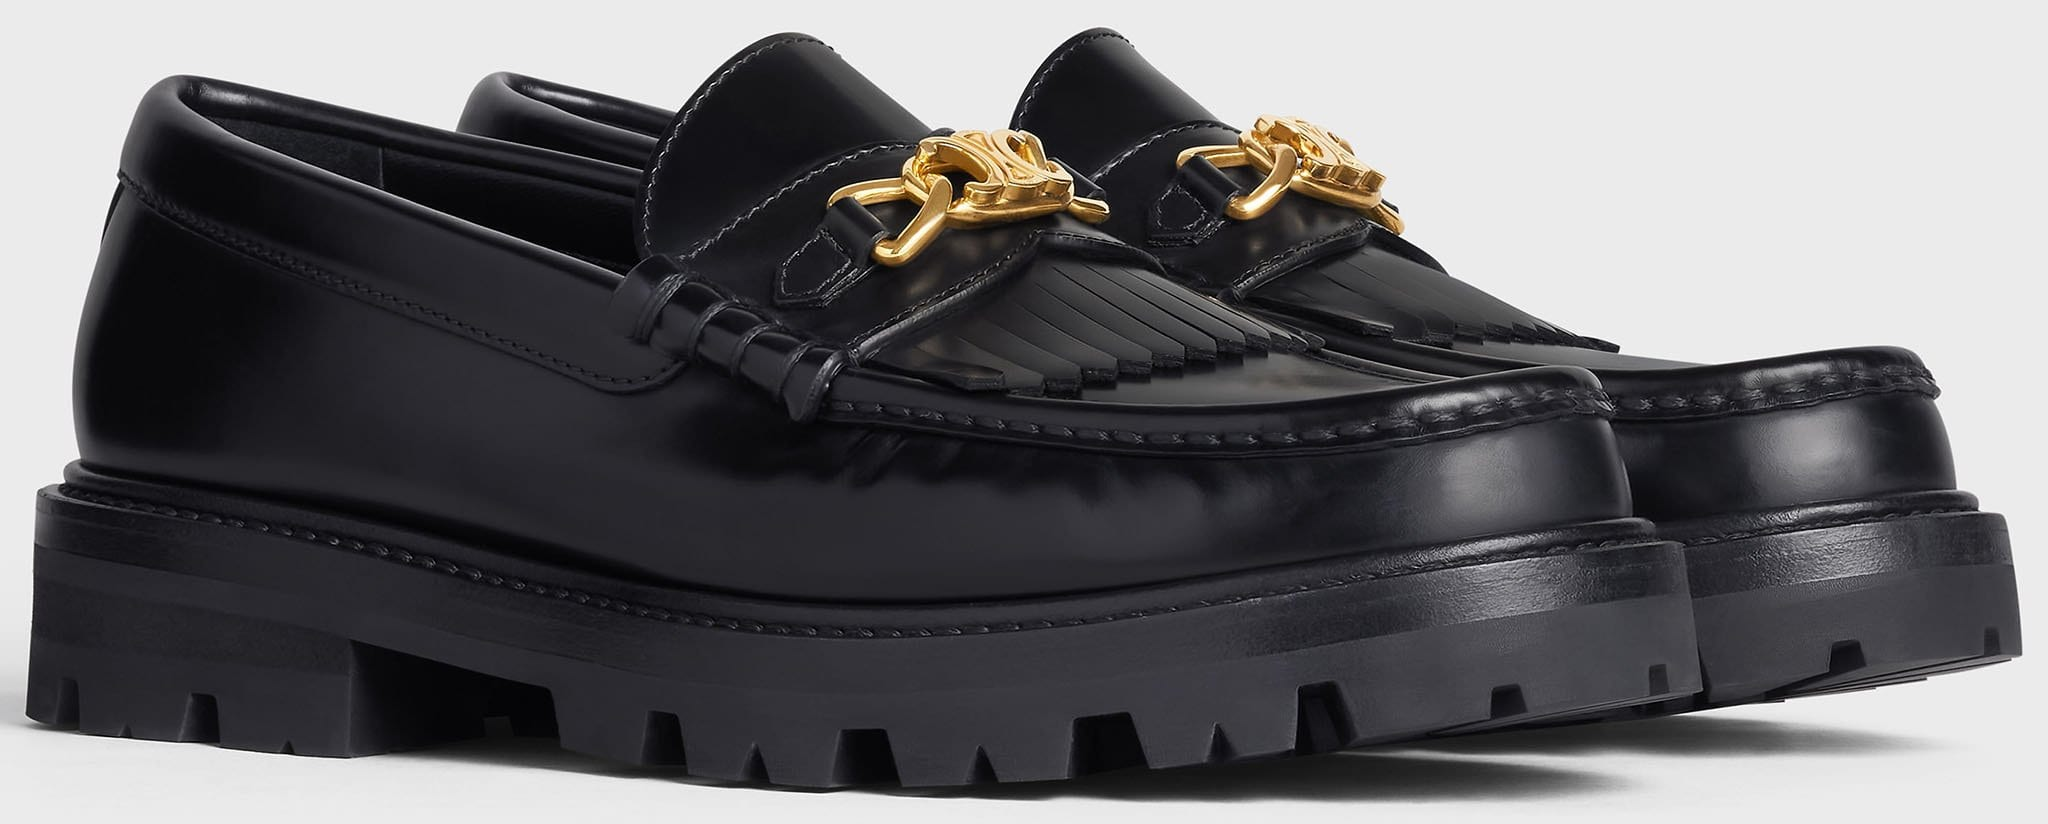 The Celine Margaret chunky loafers feature Triomphe gold chain, fringes, and rubber lug outsoles